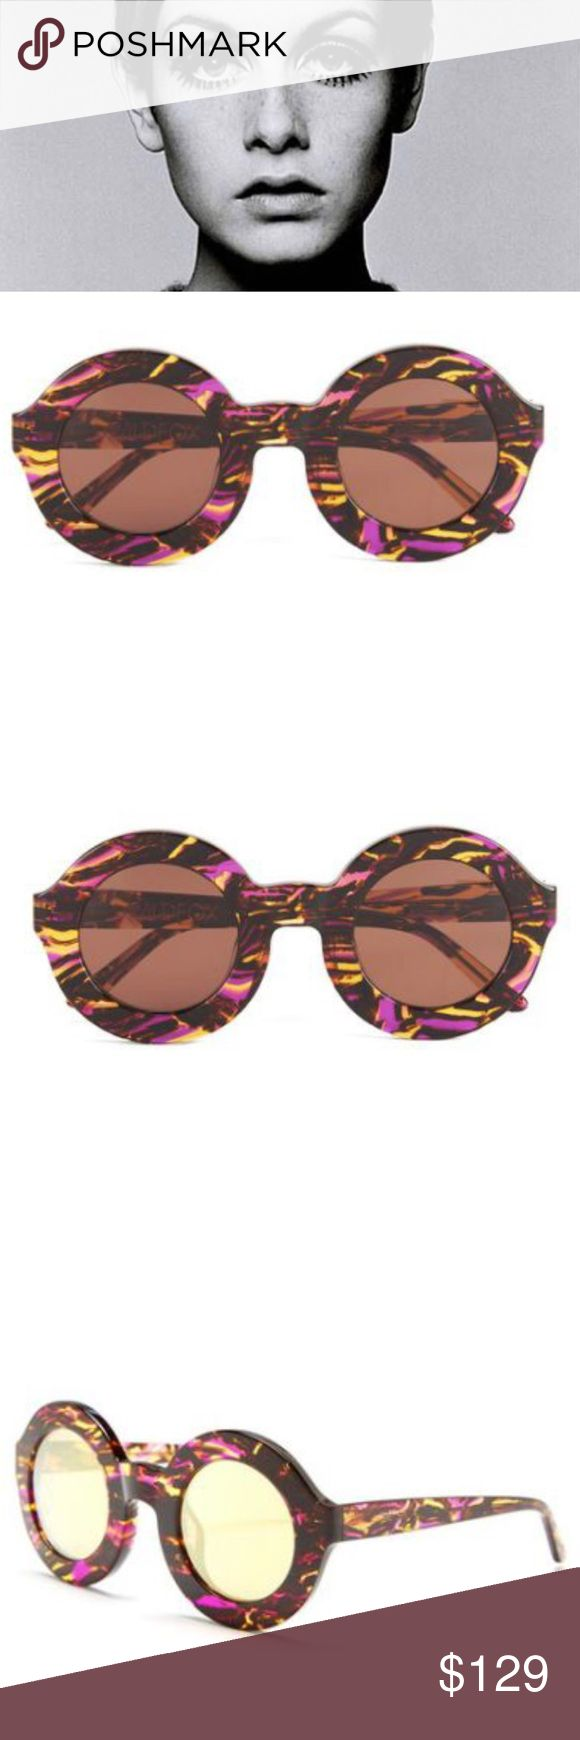 """Wildfox """"TWIGGY Montage tortoise sunnies WILDFOX TWIGGY MONTAGE ROUND SUNGLASSES  TORTOISE FRAME  RETAIL $180 NEW IN BOX  Peace, love, and super-round sunnies. The Twiggy frame is inspired by our favorite 60's babe. Handmade with Italian acetate. CR39 optical grade lenses offering UV A and B protection. 5 barrel French comotec hinge. Case and cleaning cloth included.   Eye width: 44mm  Bridge Width: 13mm  Temple length: 145mm Wildfox Accessories Sunglasses"""